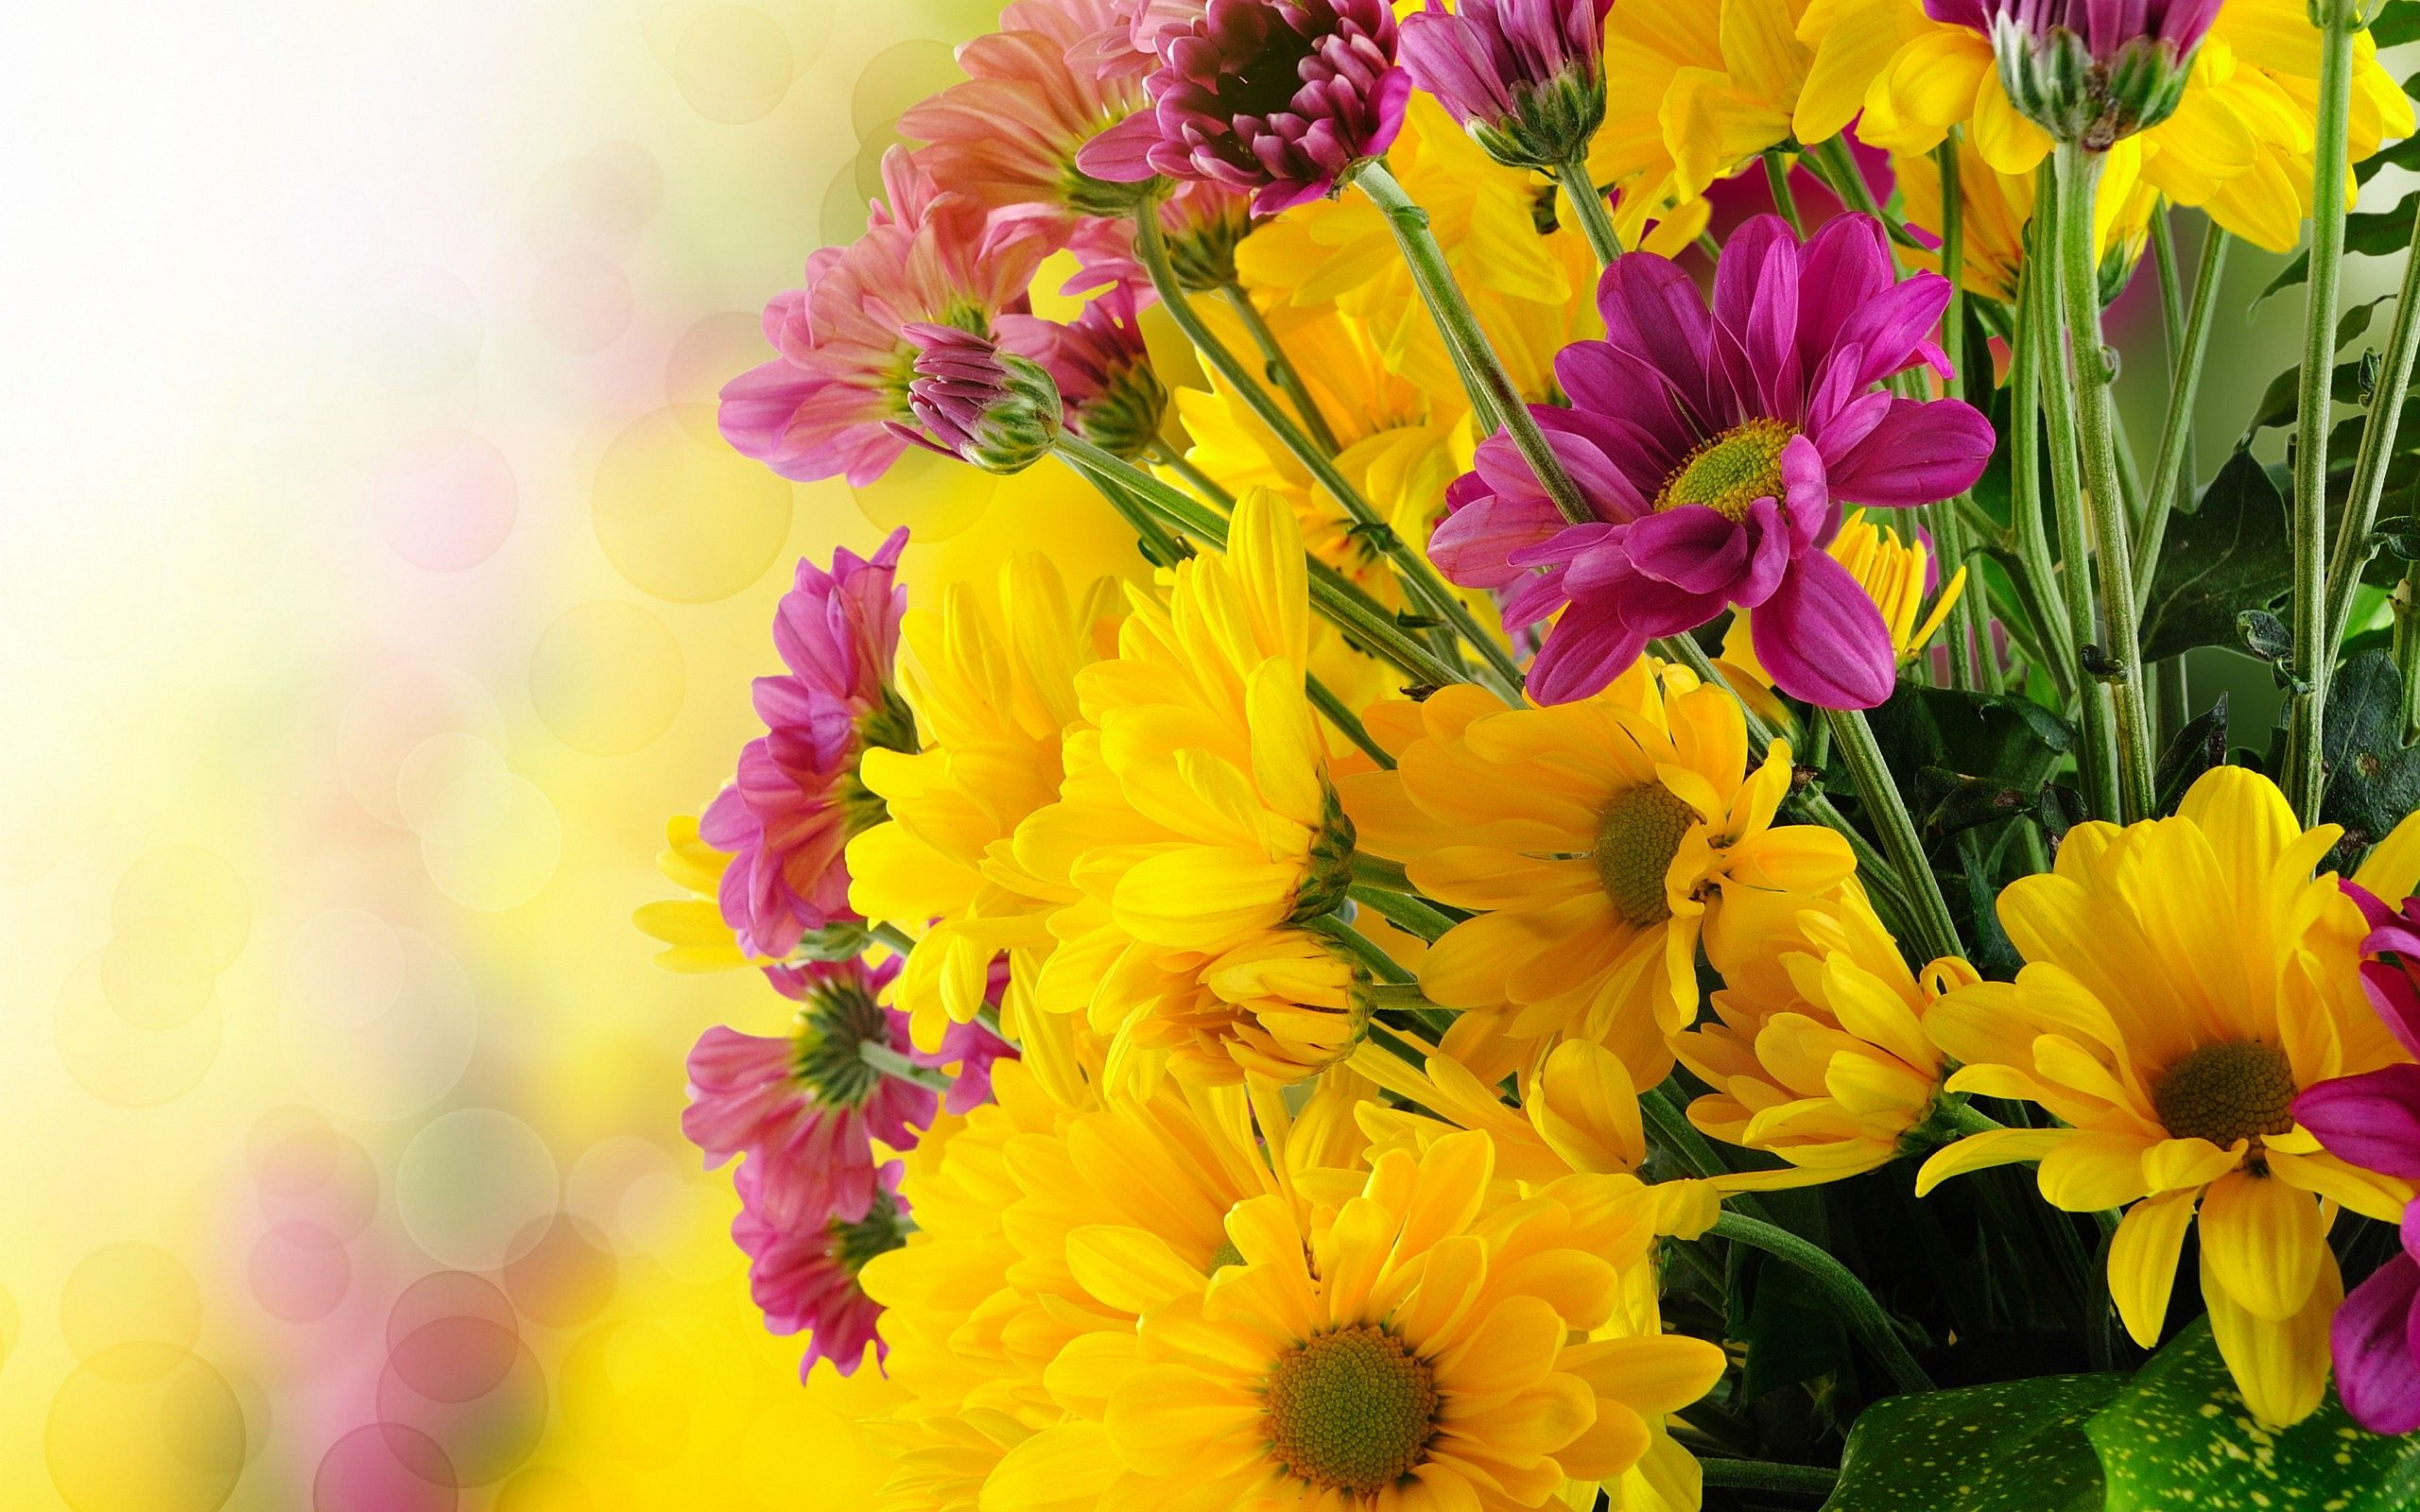 Yellow Flowers Images Find Best Latest For Your Pc Desktop Background Mobile